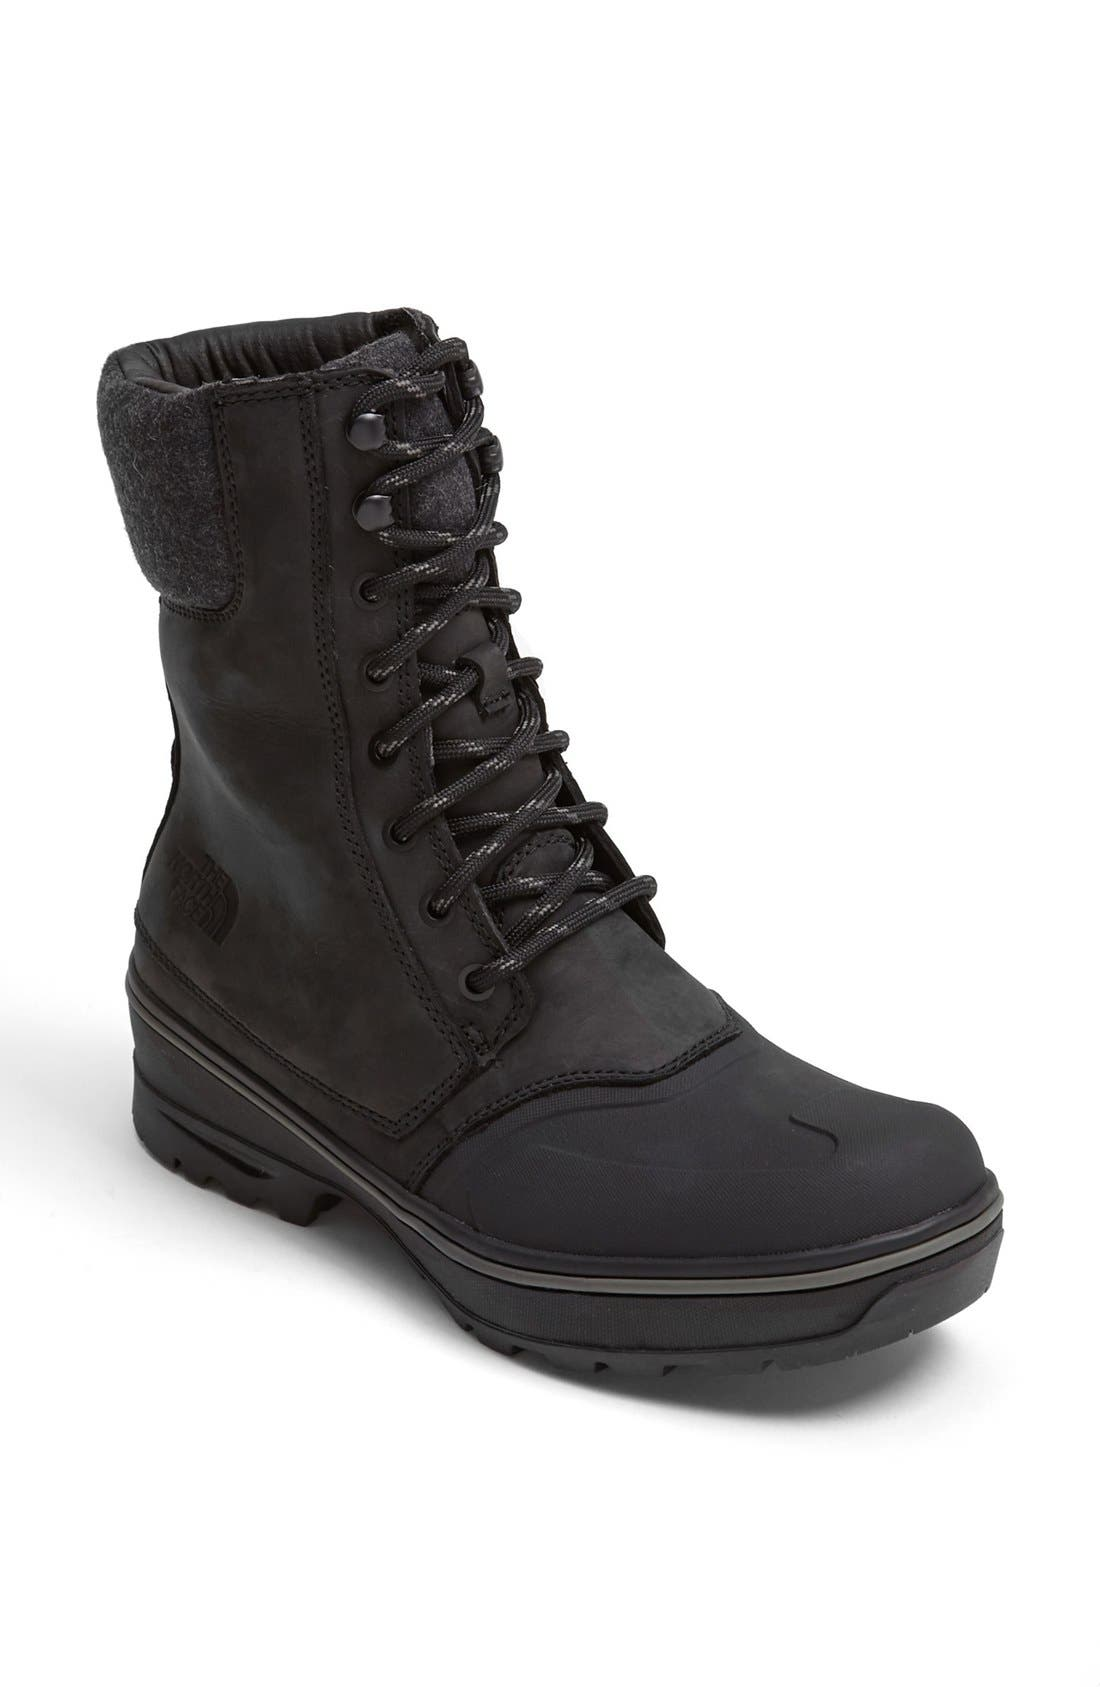 Main Image - The North Face 'Shellisto' Snow Boot